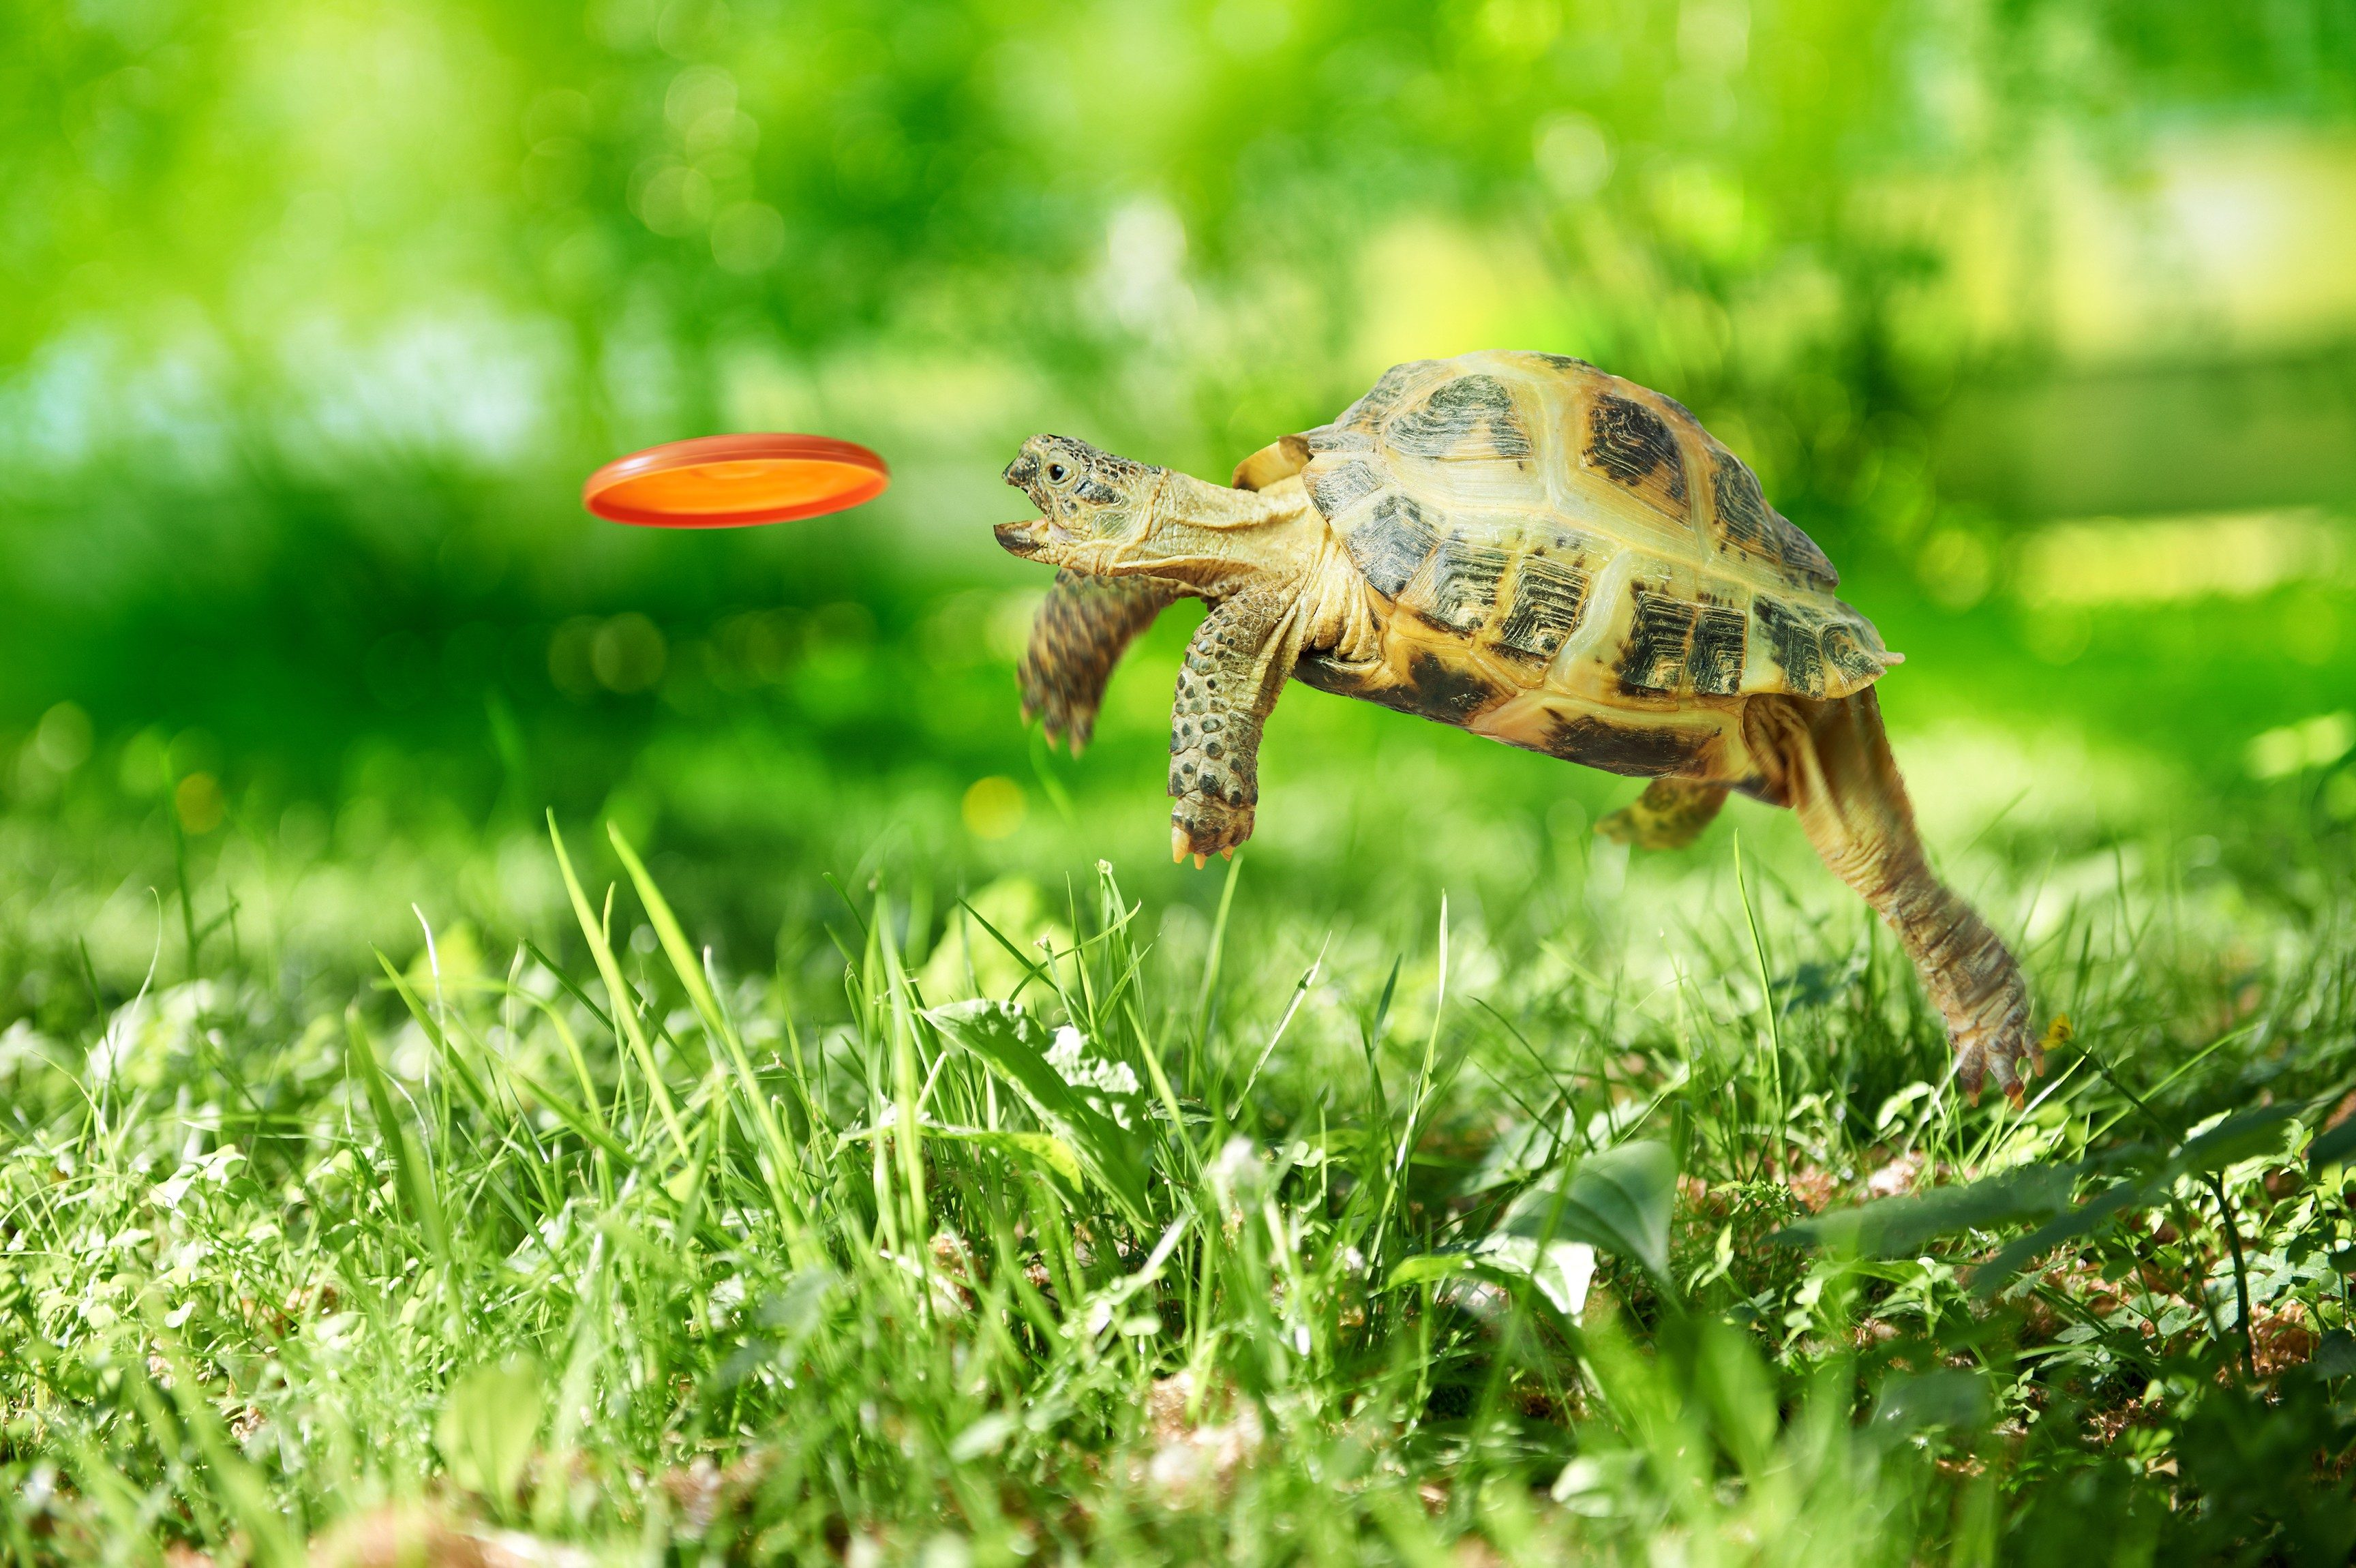 Turtle-jumps-and-catches-the-frisbee.jpg